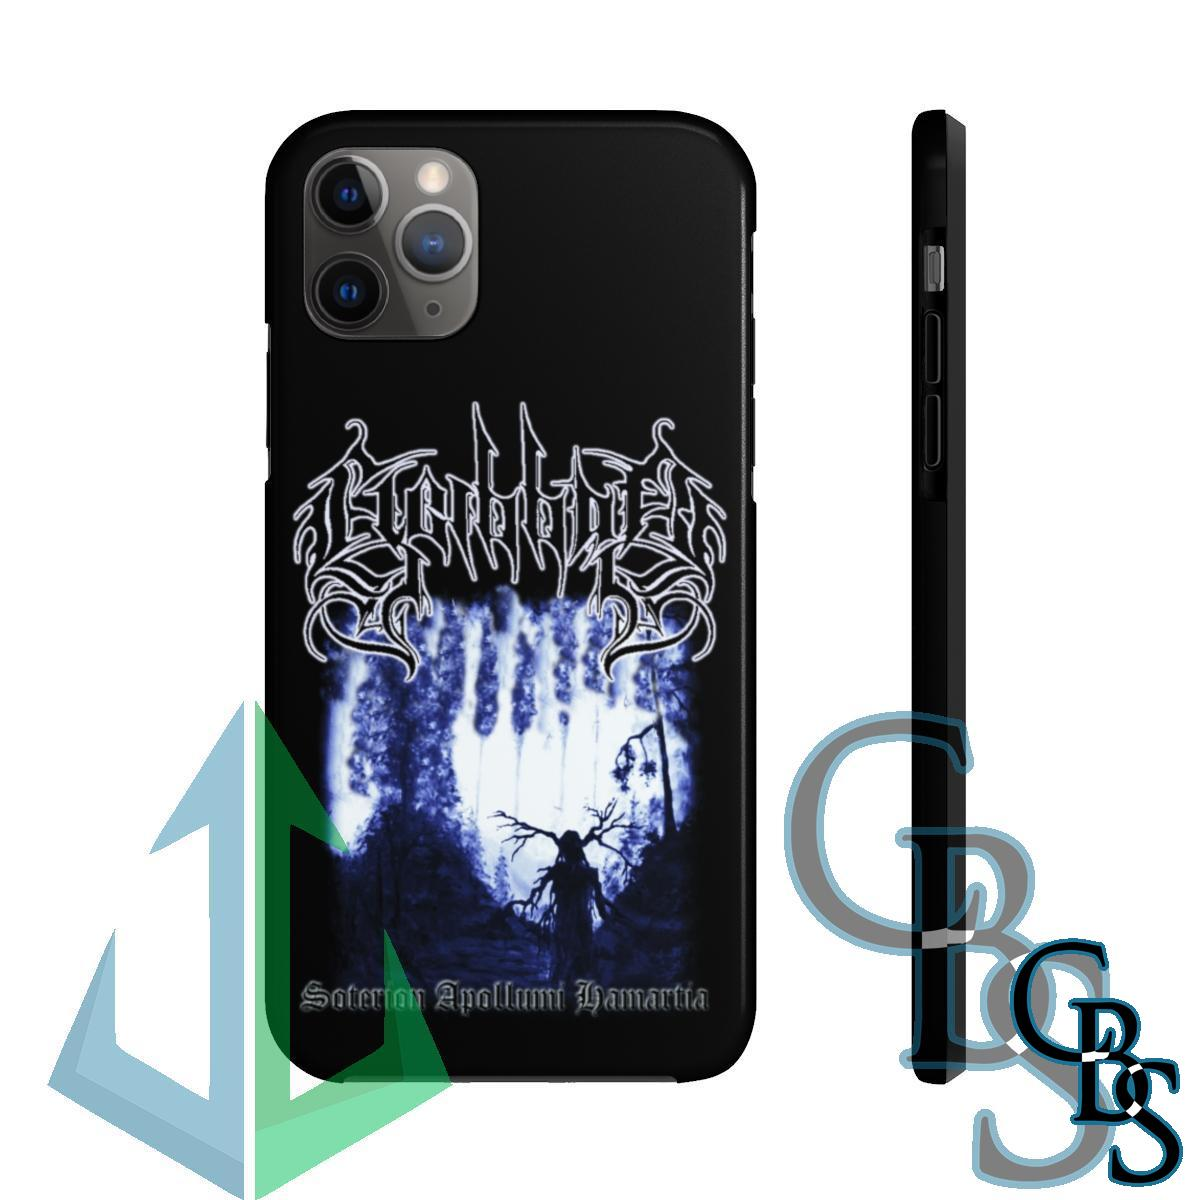 Elgibbor Soterion Tough iPhone Cases (iPhone 7/7 Plus, iPhone 8/8 Plus, iPhone X, XS, XR, iPhone 11, 11 Pro, 11 Pro Max)